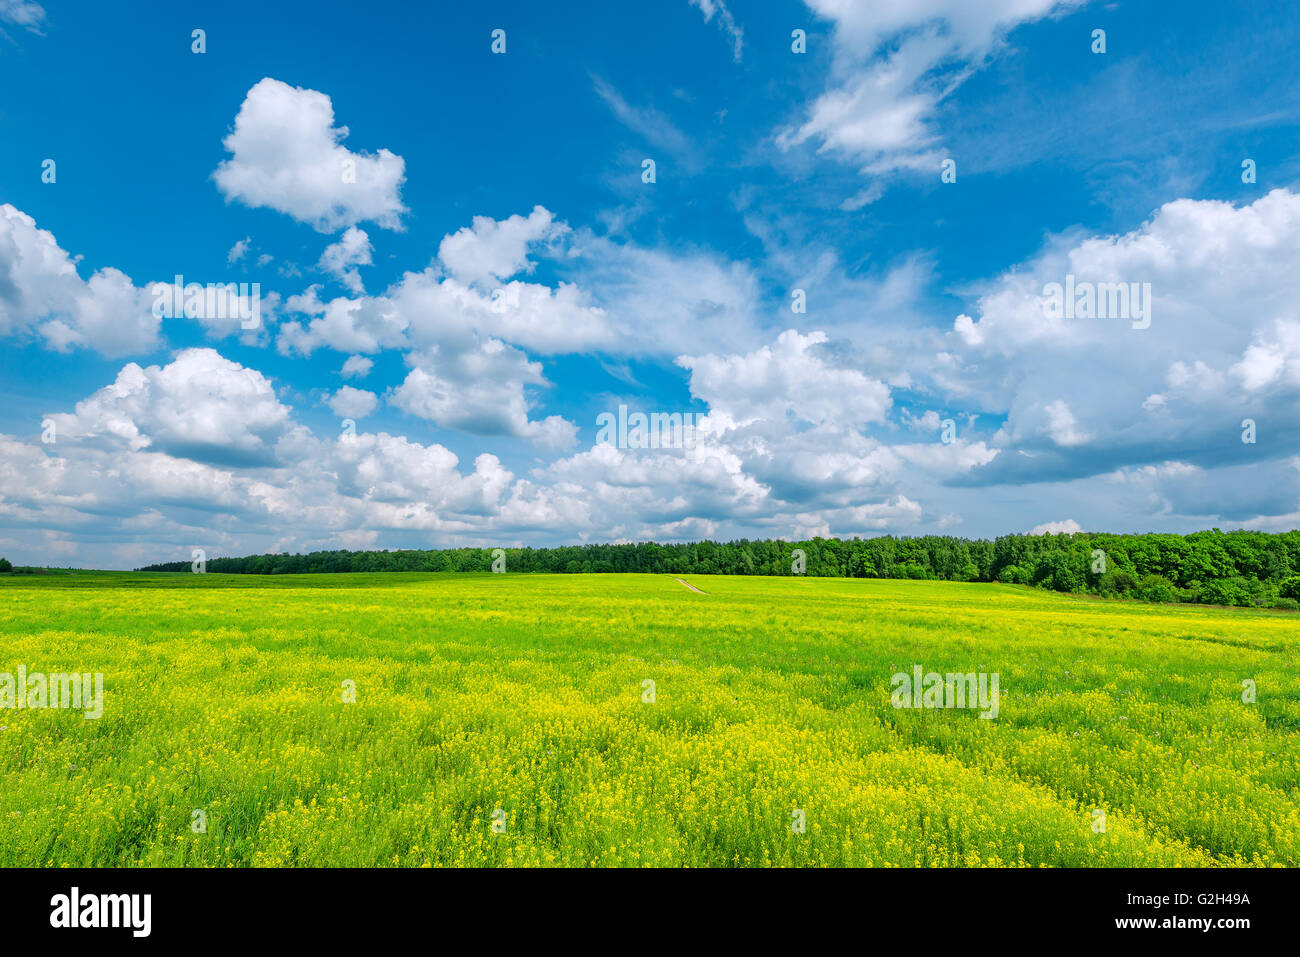 Field with flowers at hot day summer time. - Stock Image